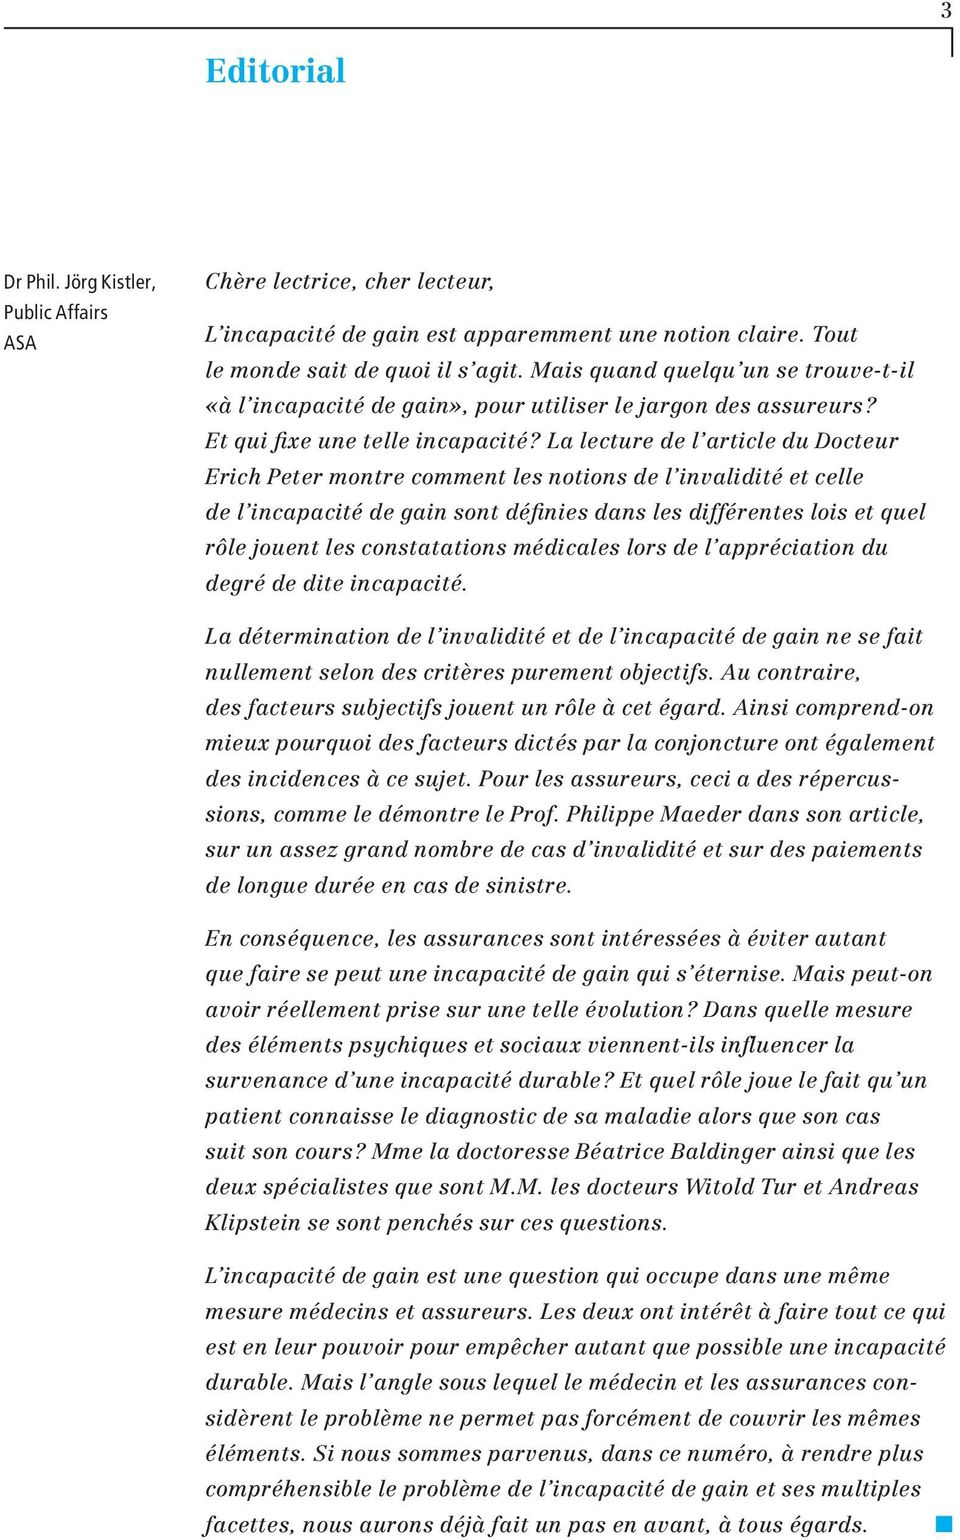 La lecture de l article du Docteur Erich Peter montre comment les notions de l invalidité et celle de l incapacité de gain sont définies dans les différentes lois et quel rôle jouent les